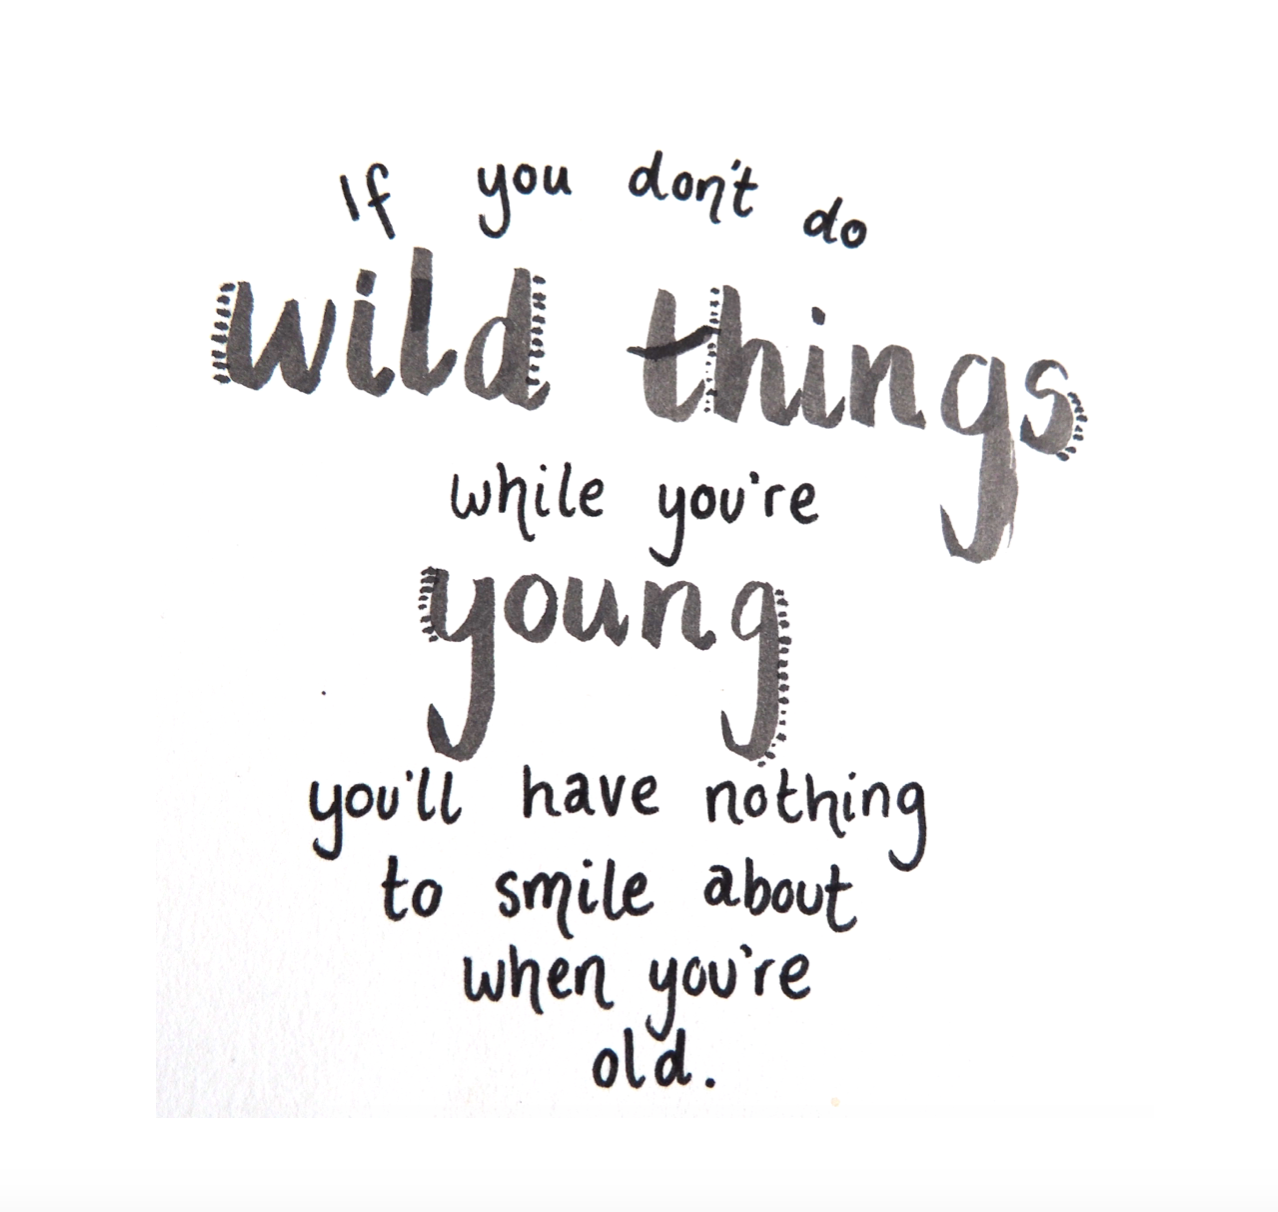 Quotes About Young Love: If You Don't Do Wild Things While You're Young, You'll